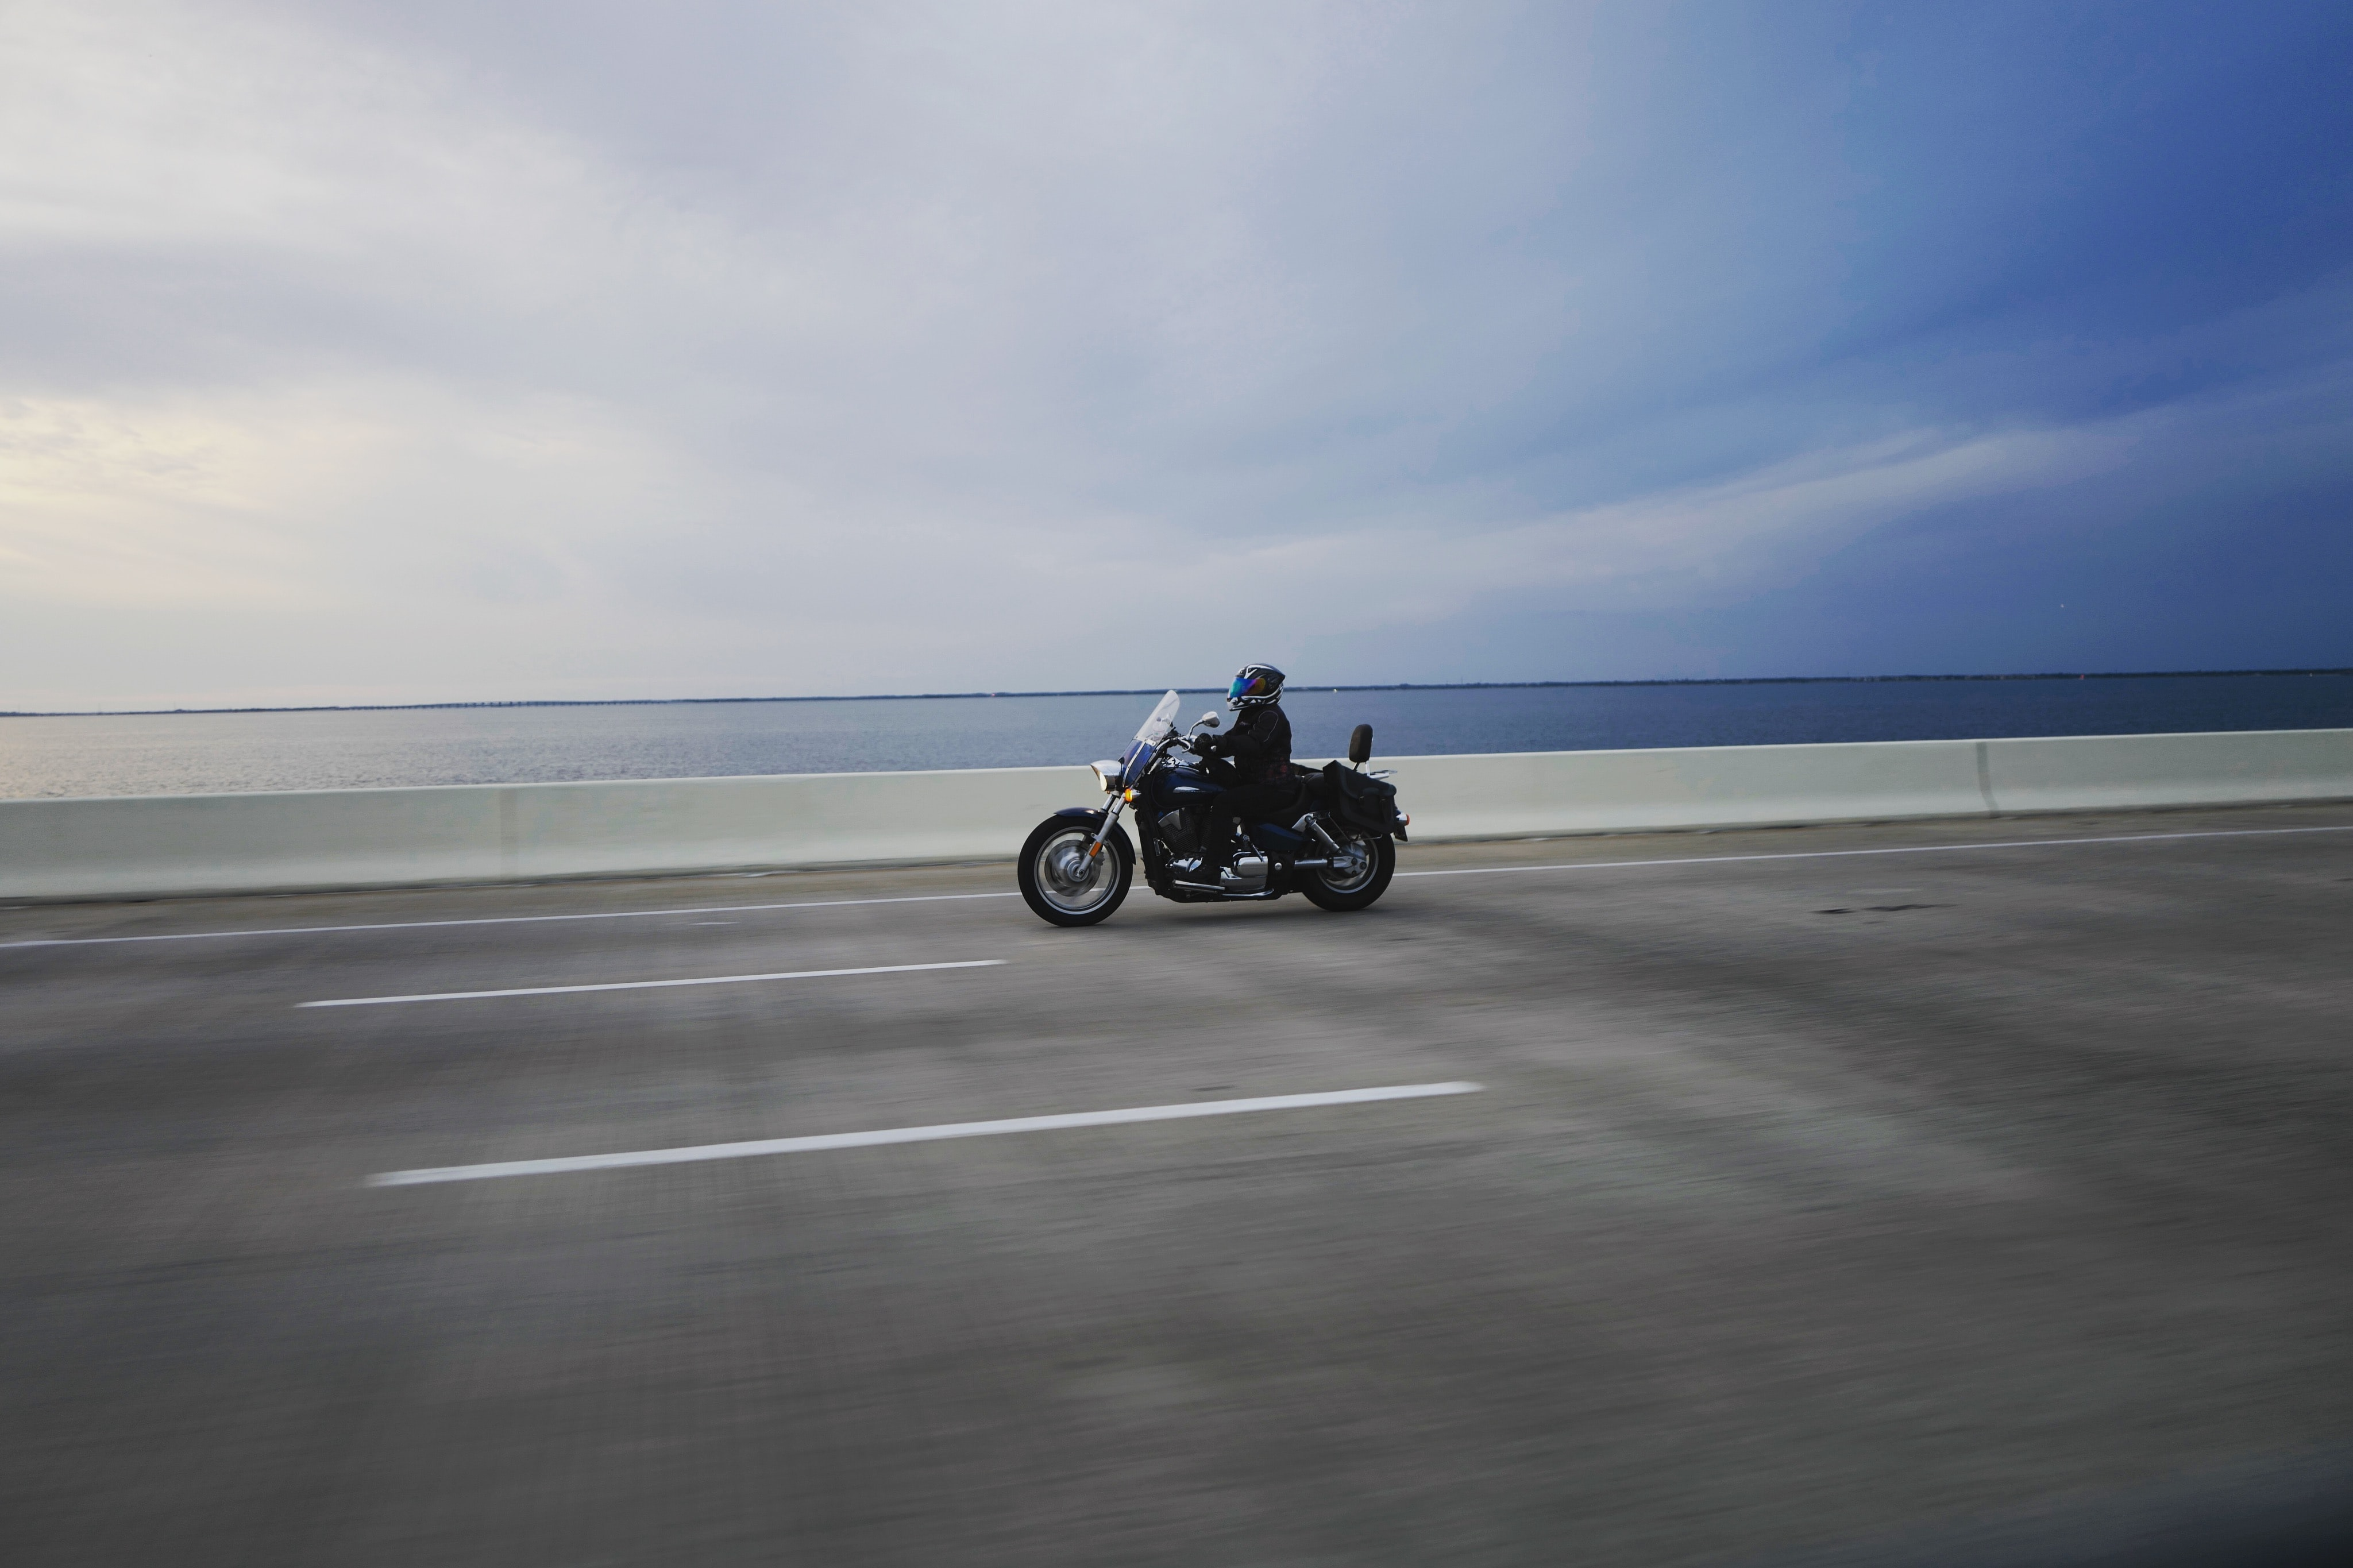 A person on a powerful motorcycle driving on a bridge with water stretching to the horizon